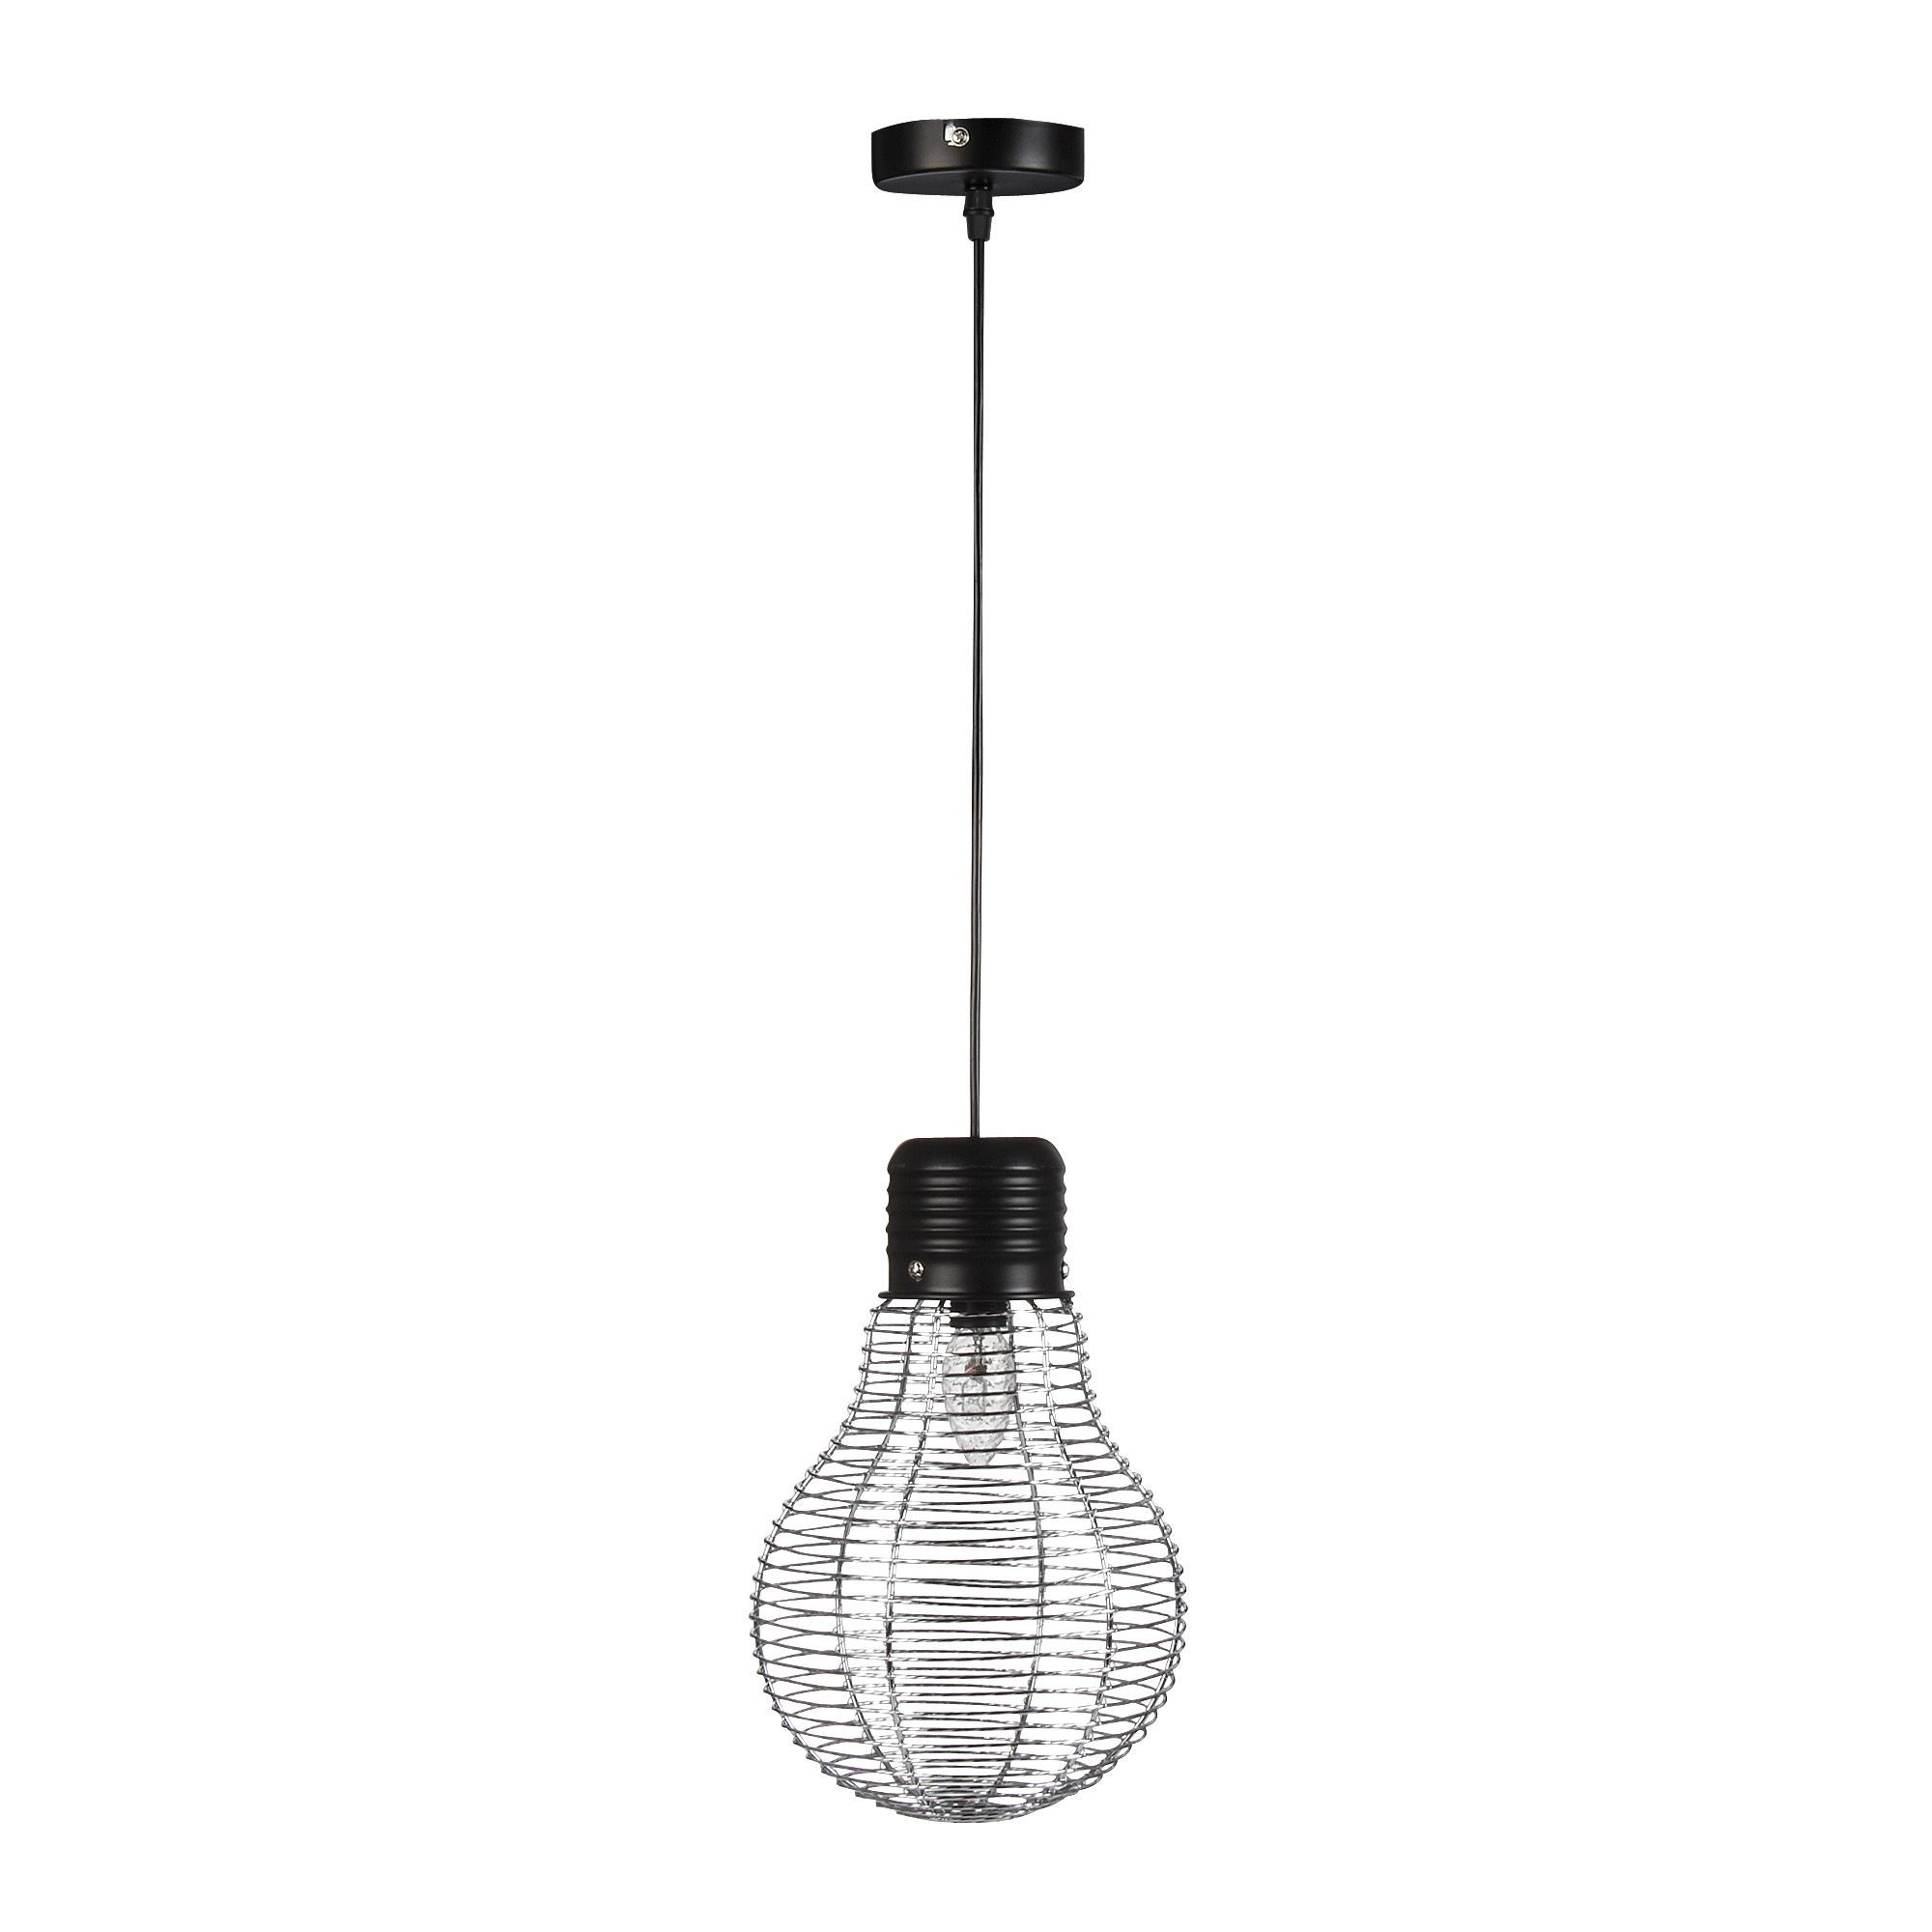 Alinea Lustre Simple Suspension Lumire Acier Hcm Noirchrome Bombilla Les